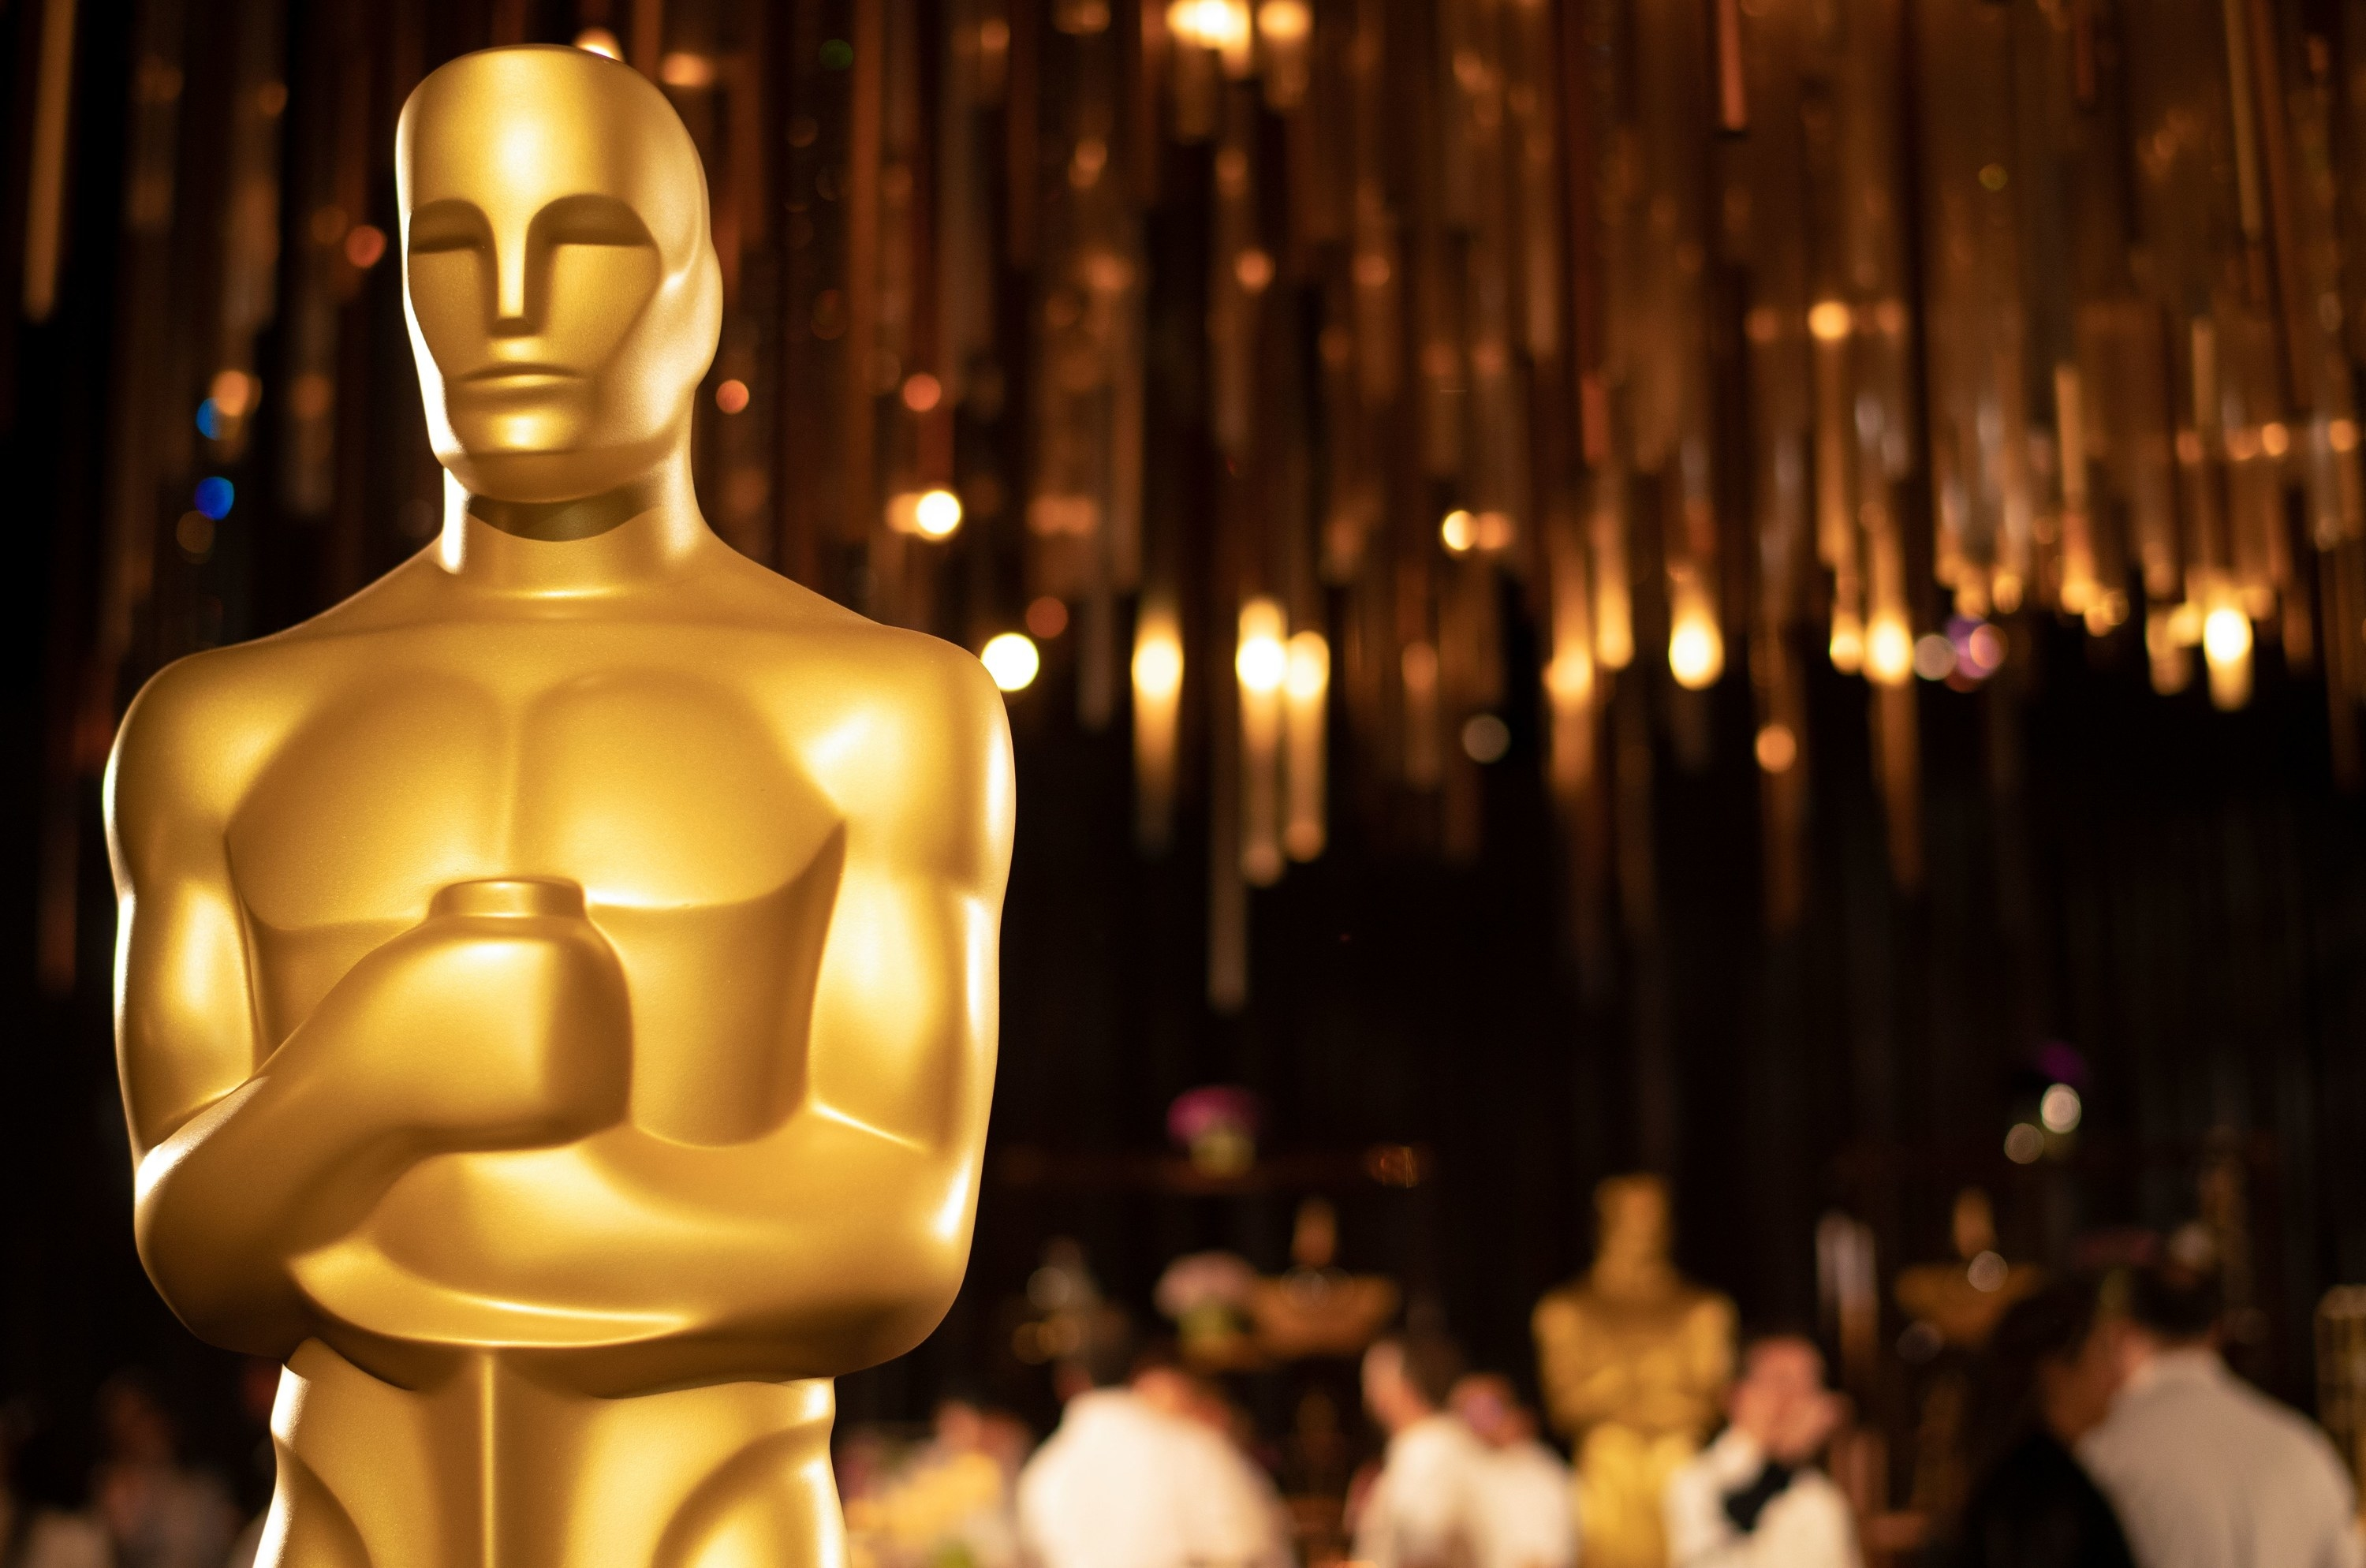 A photo of the Oscars statue